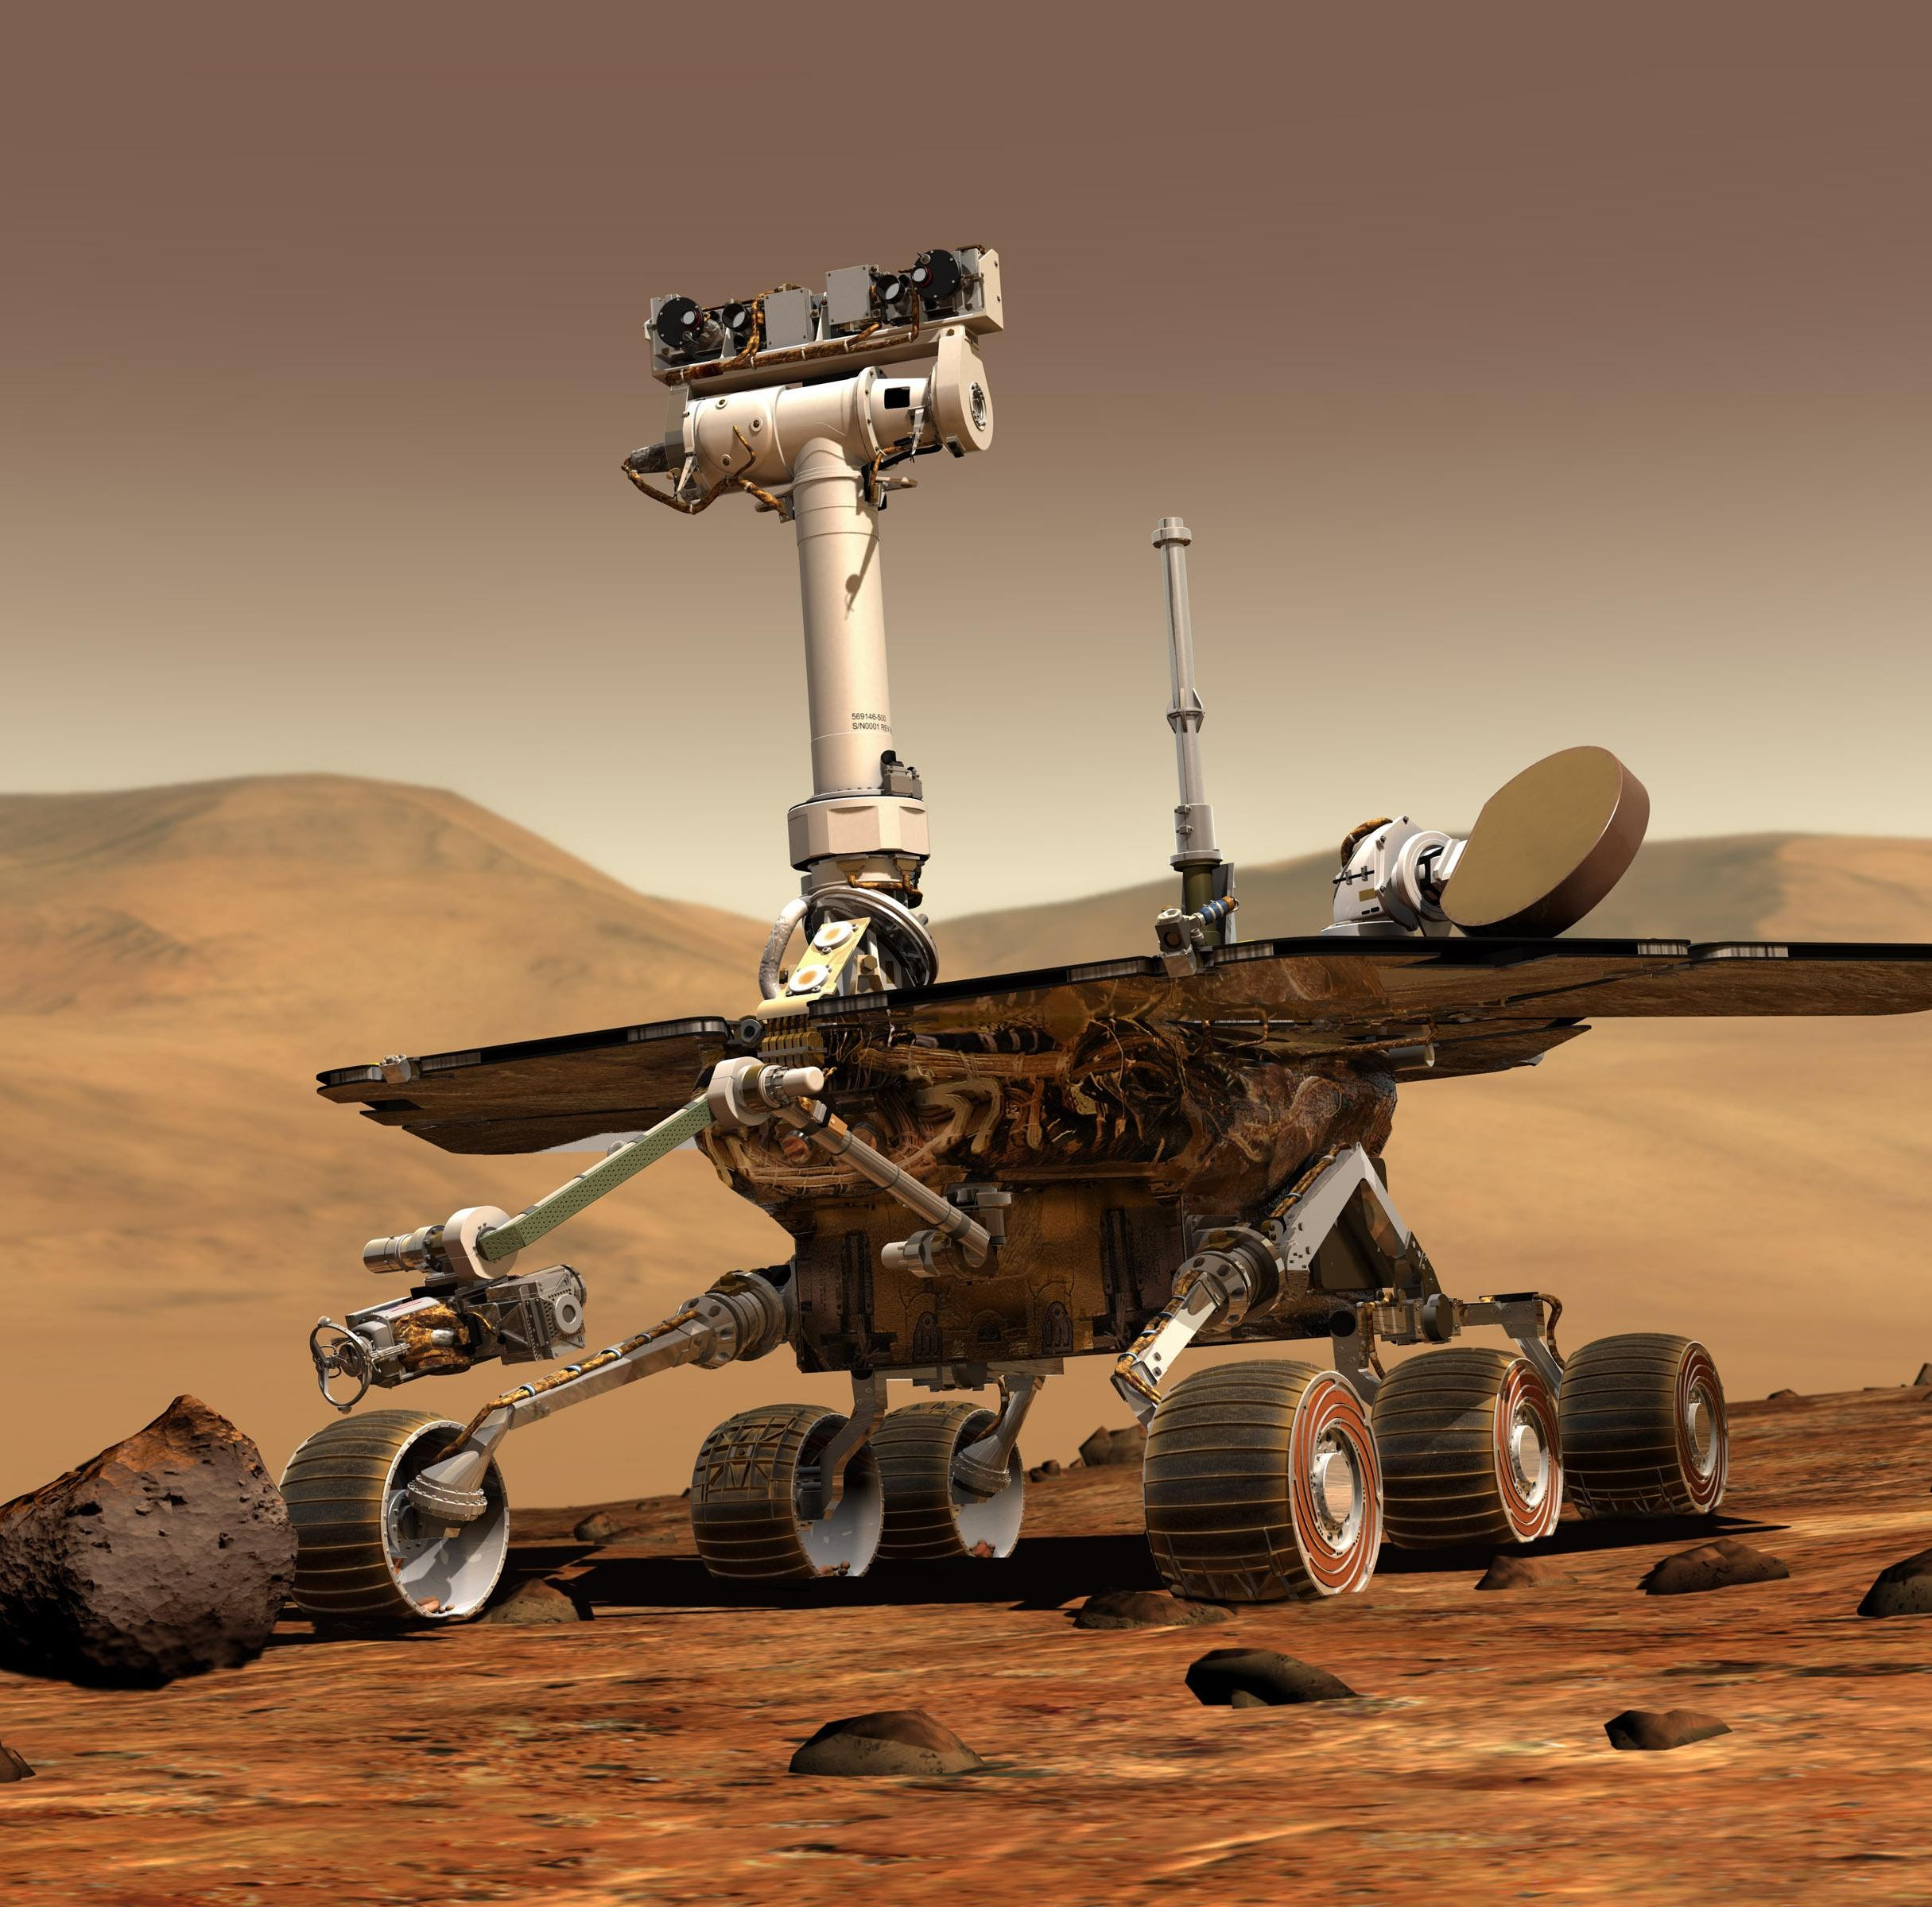 NASA declares Opportunity rover's mission over on Mars